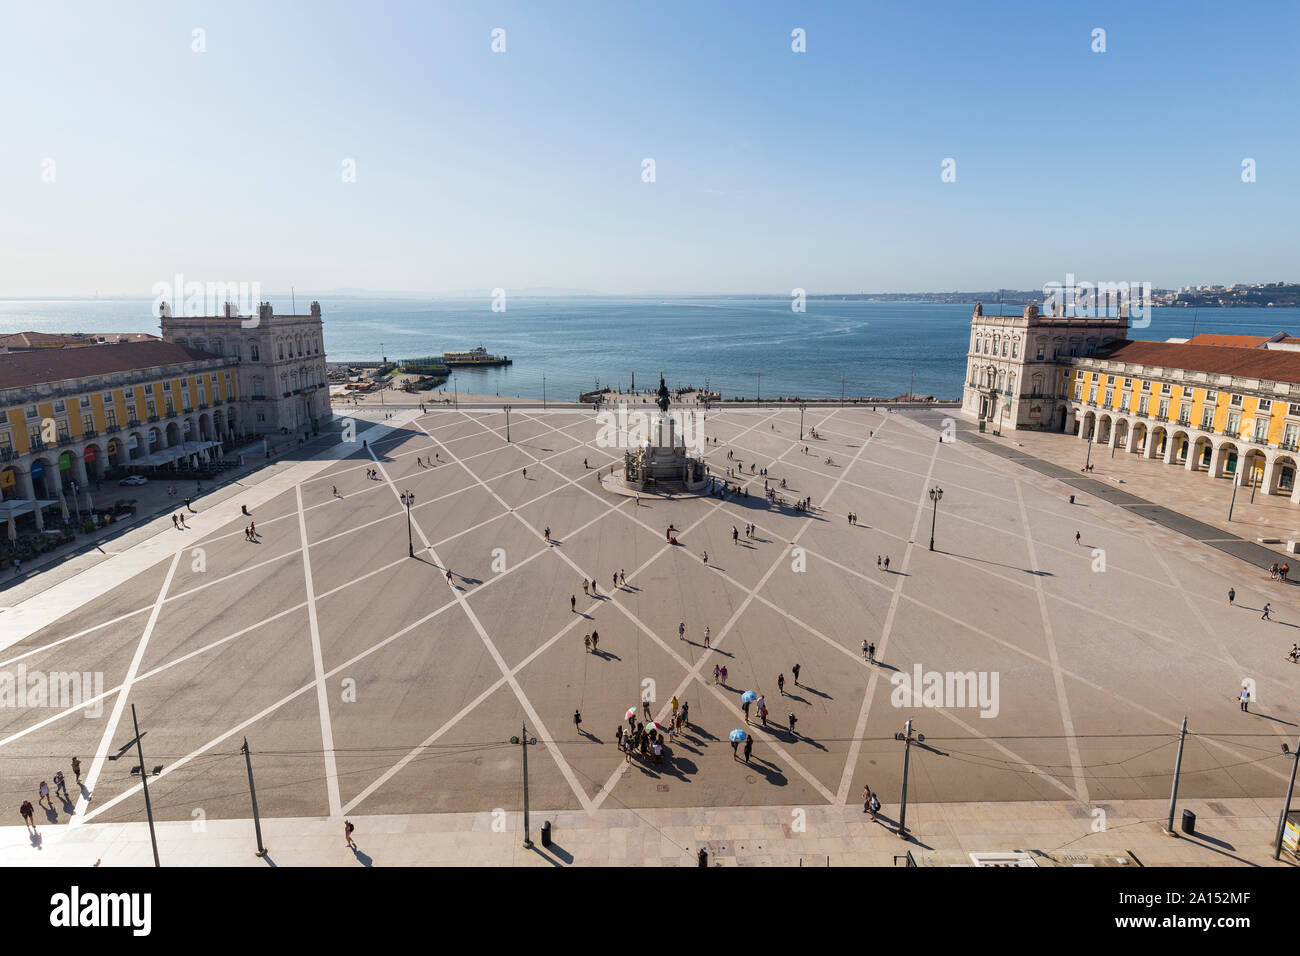 View of Tagus River and people and statue of King Jose I at Praca do Comercio square in Baixa district in Lisbon, Portugal, from above on a sunny day. Stock Photo